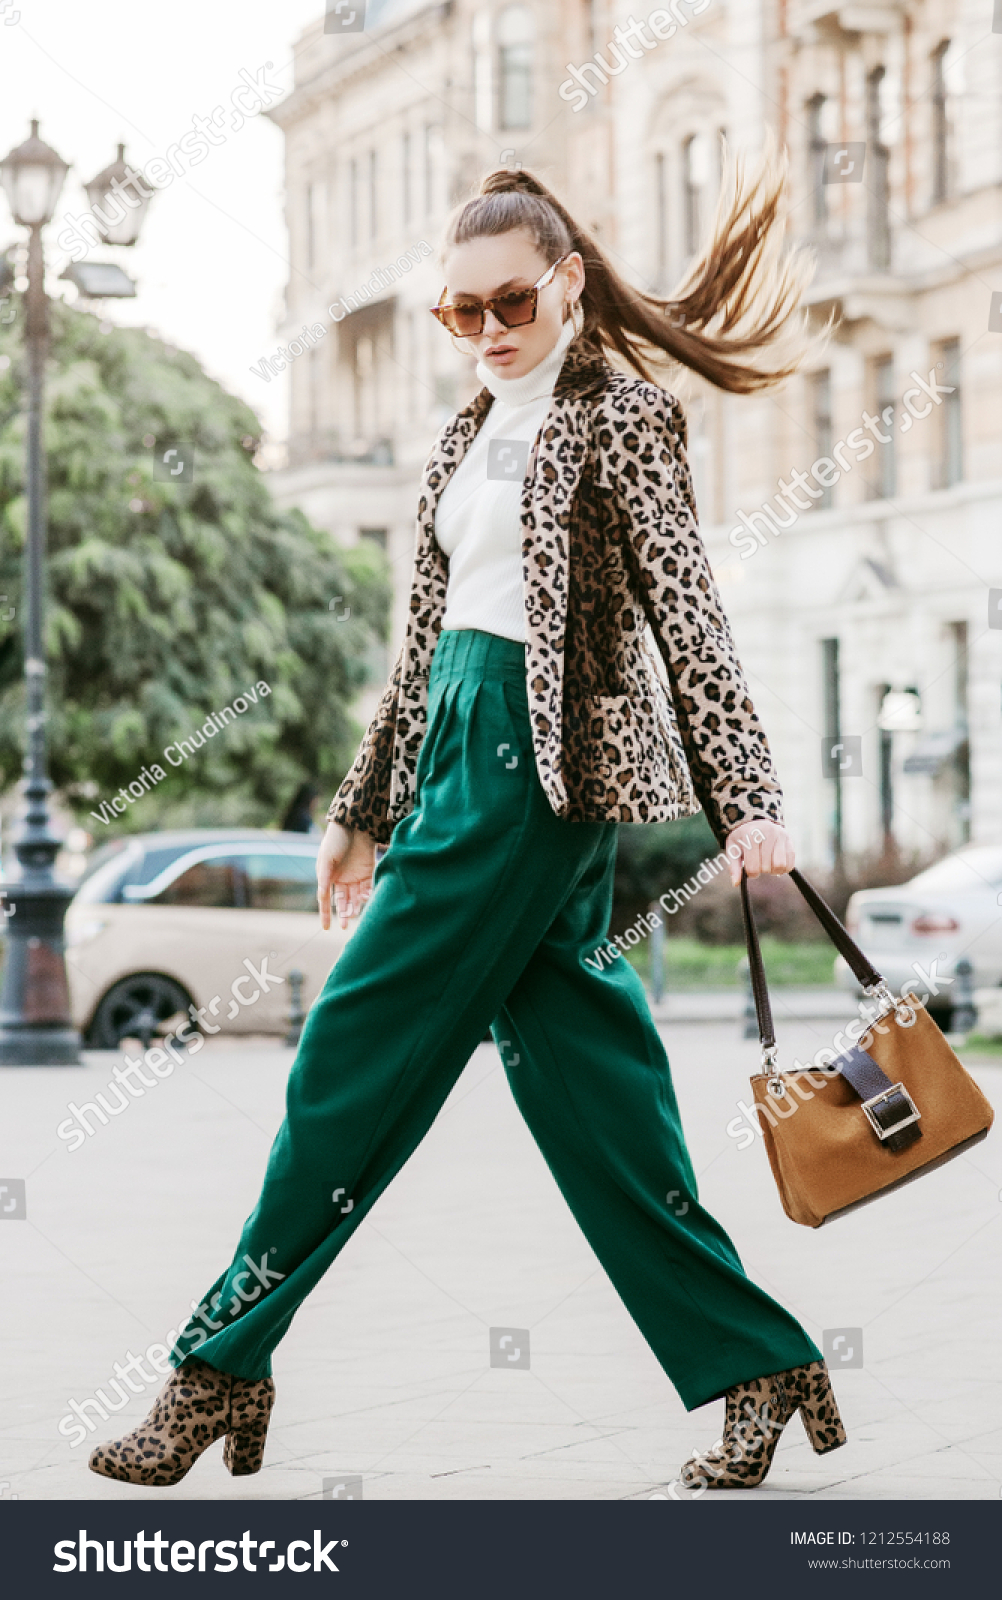 Outdoor full body fashion portrait of  fashionable woman wearing sunglasses, white turtleneck, leopard print blazer, boots, green trousers, holding brown suede bag, walking in street of european city #1212554188